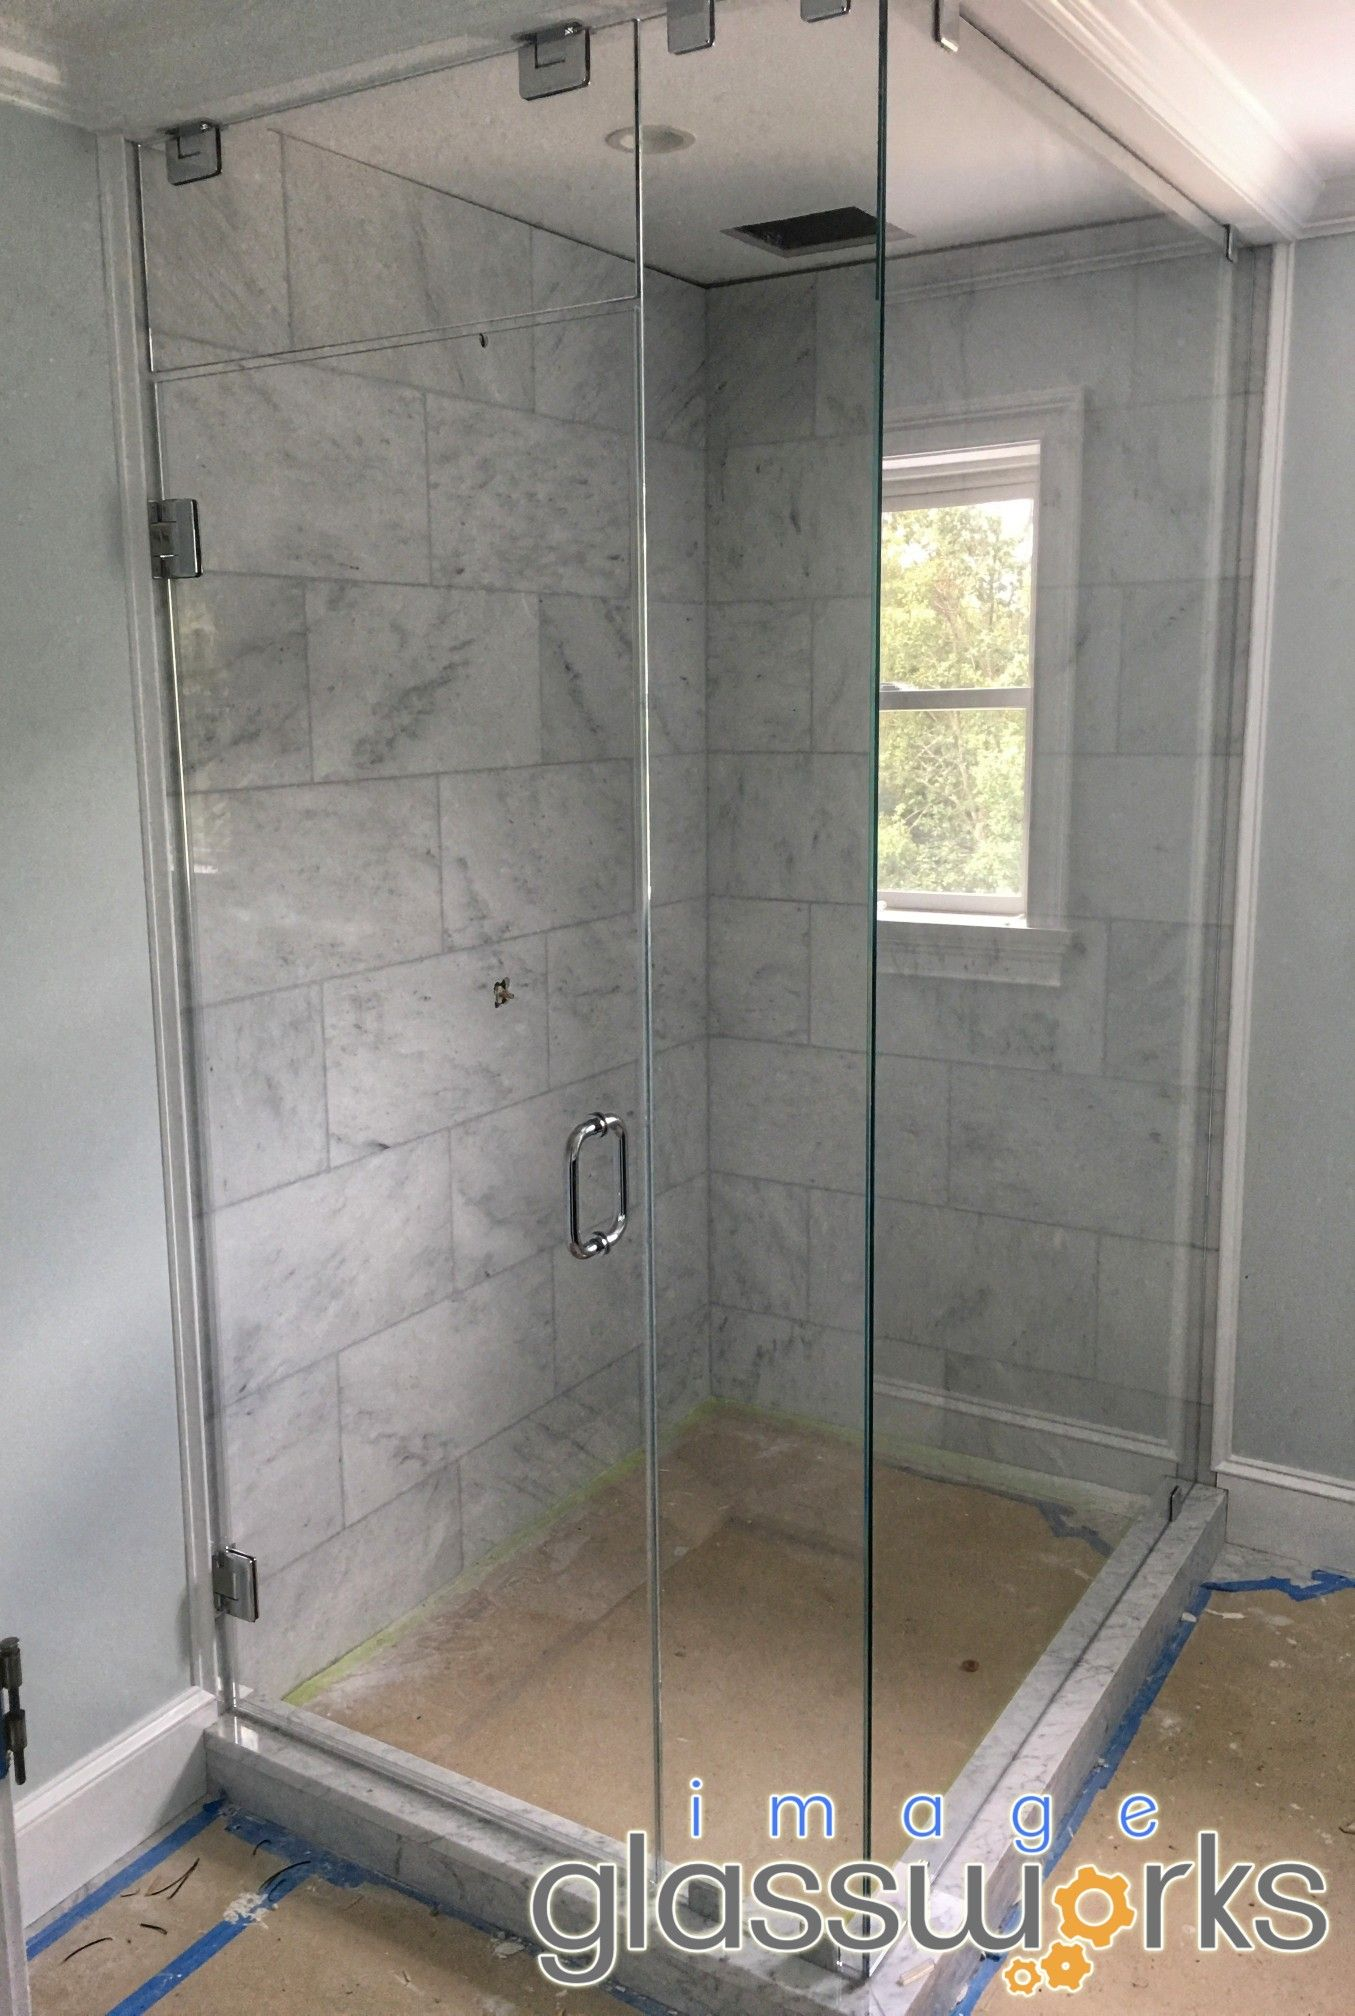 Bathroom Is Currently Under Construction But Take A Look At This Beautifully Completed Steam Unit Enclosure W Frameless Shower Doors Glass Shower Shower Doors